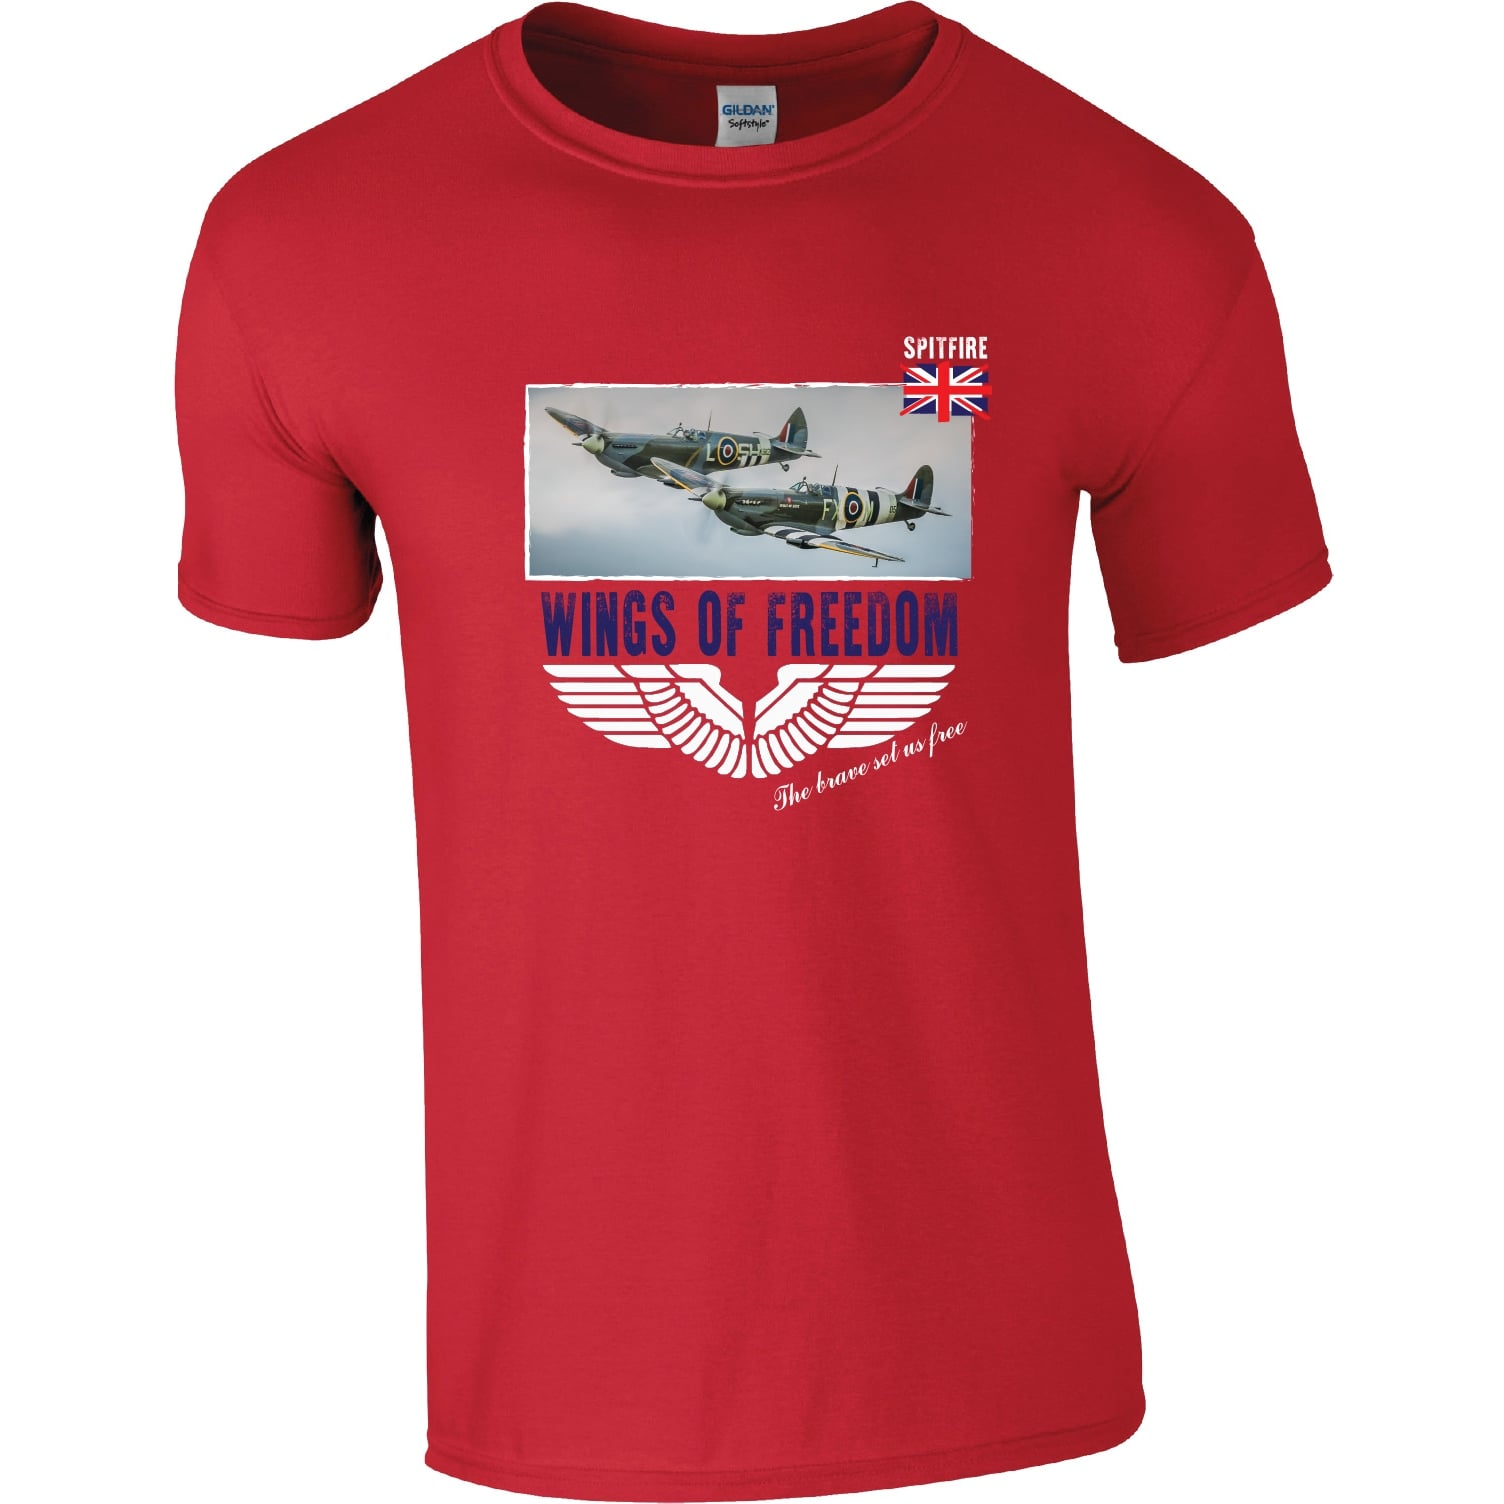 Aerospace clothing store